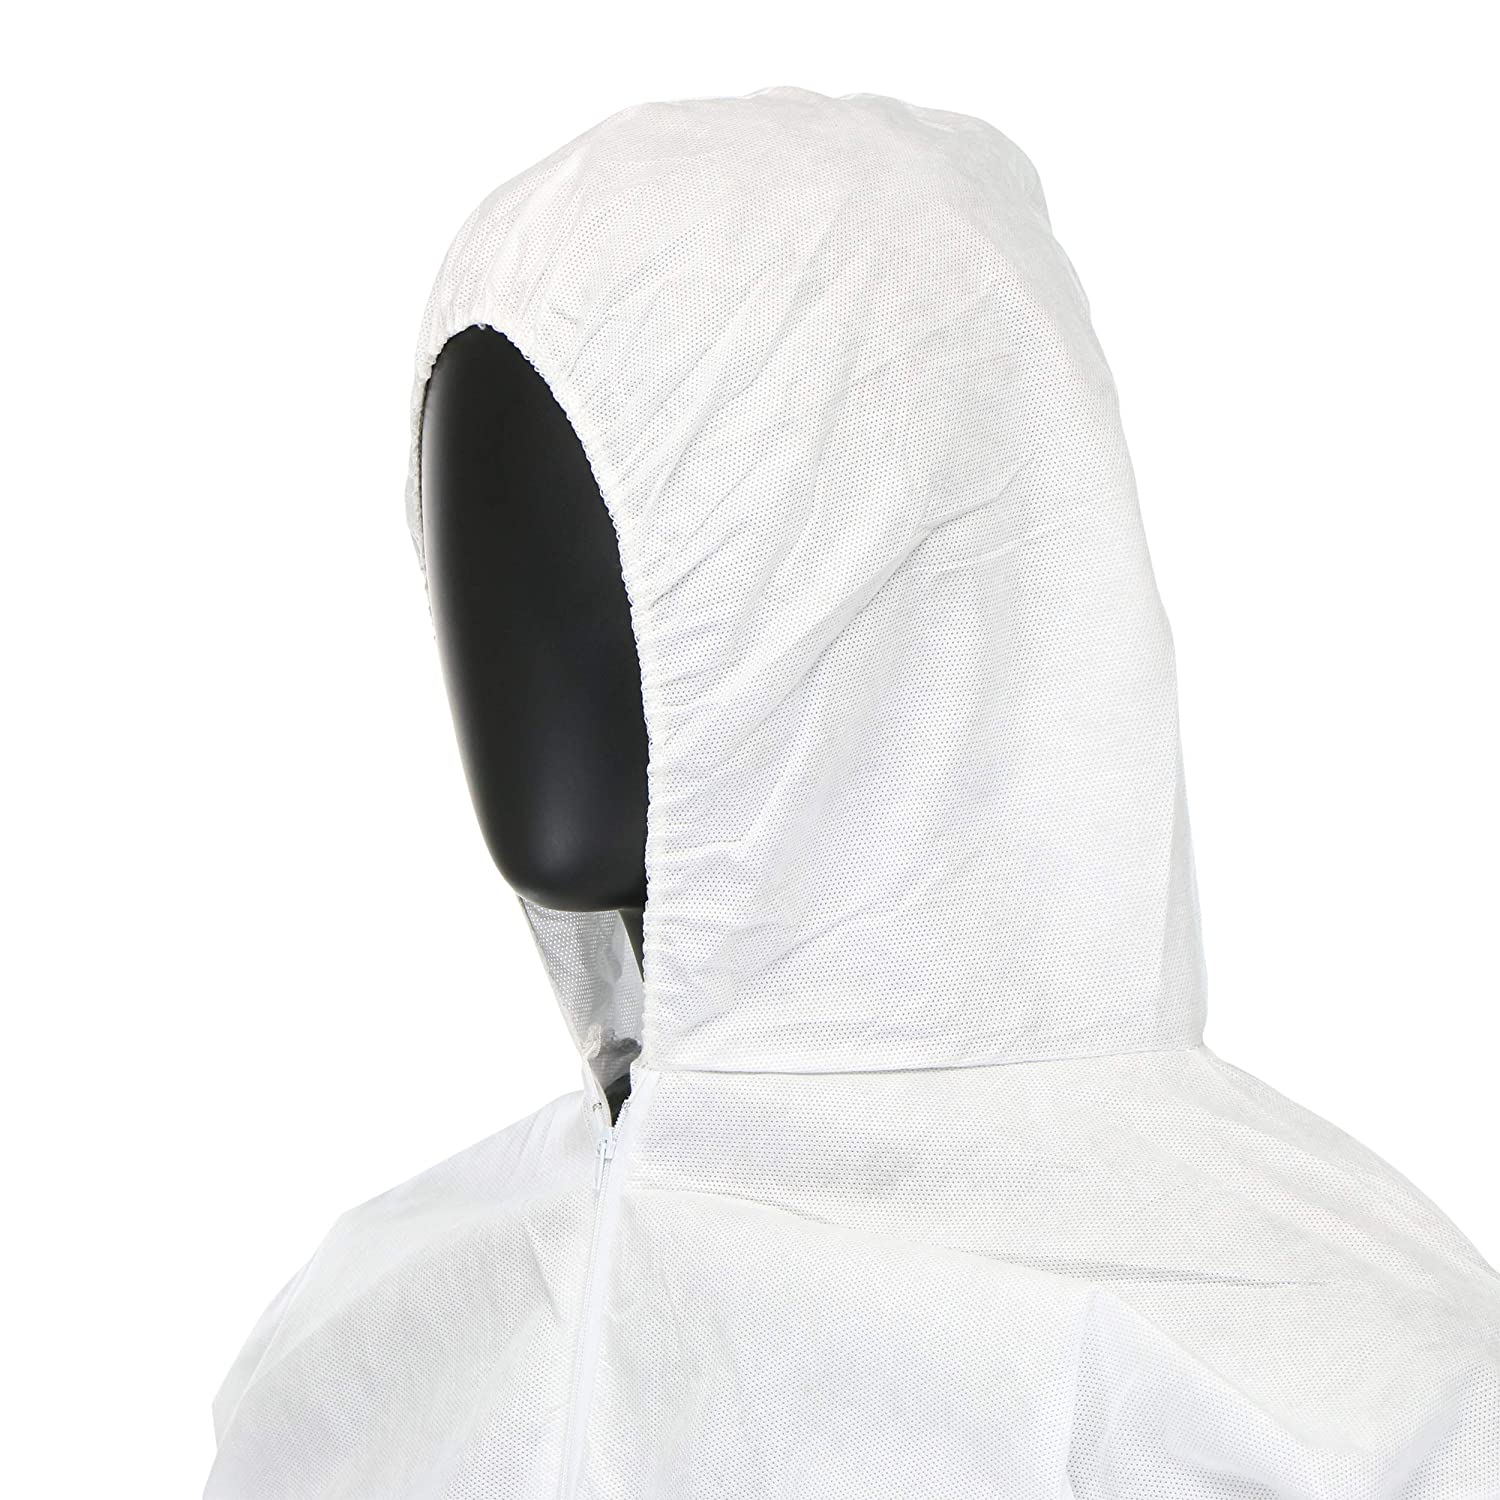 2XL West Chester C3806 2XL PosiM3 Coverall Hood El Wrist and Ankle Pack of 25 White